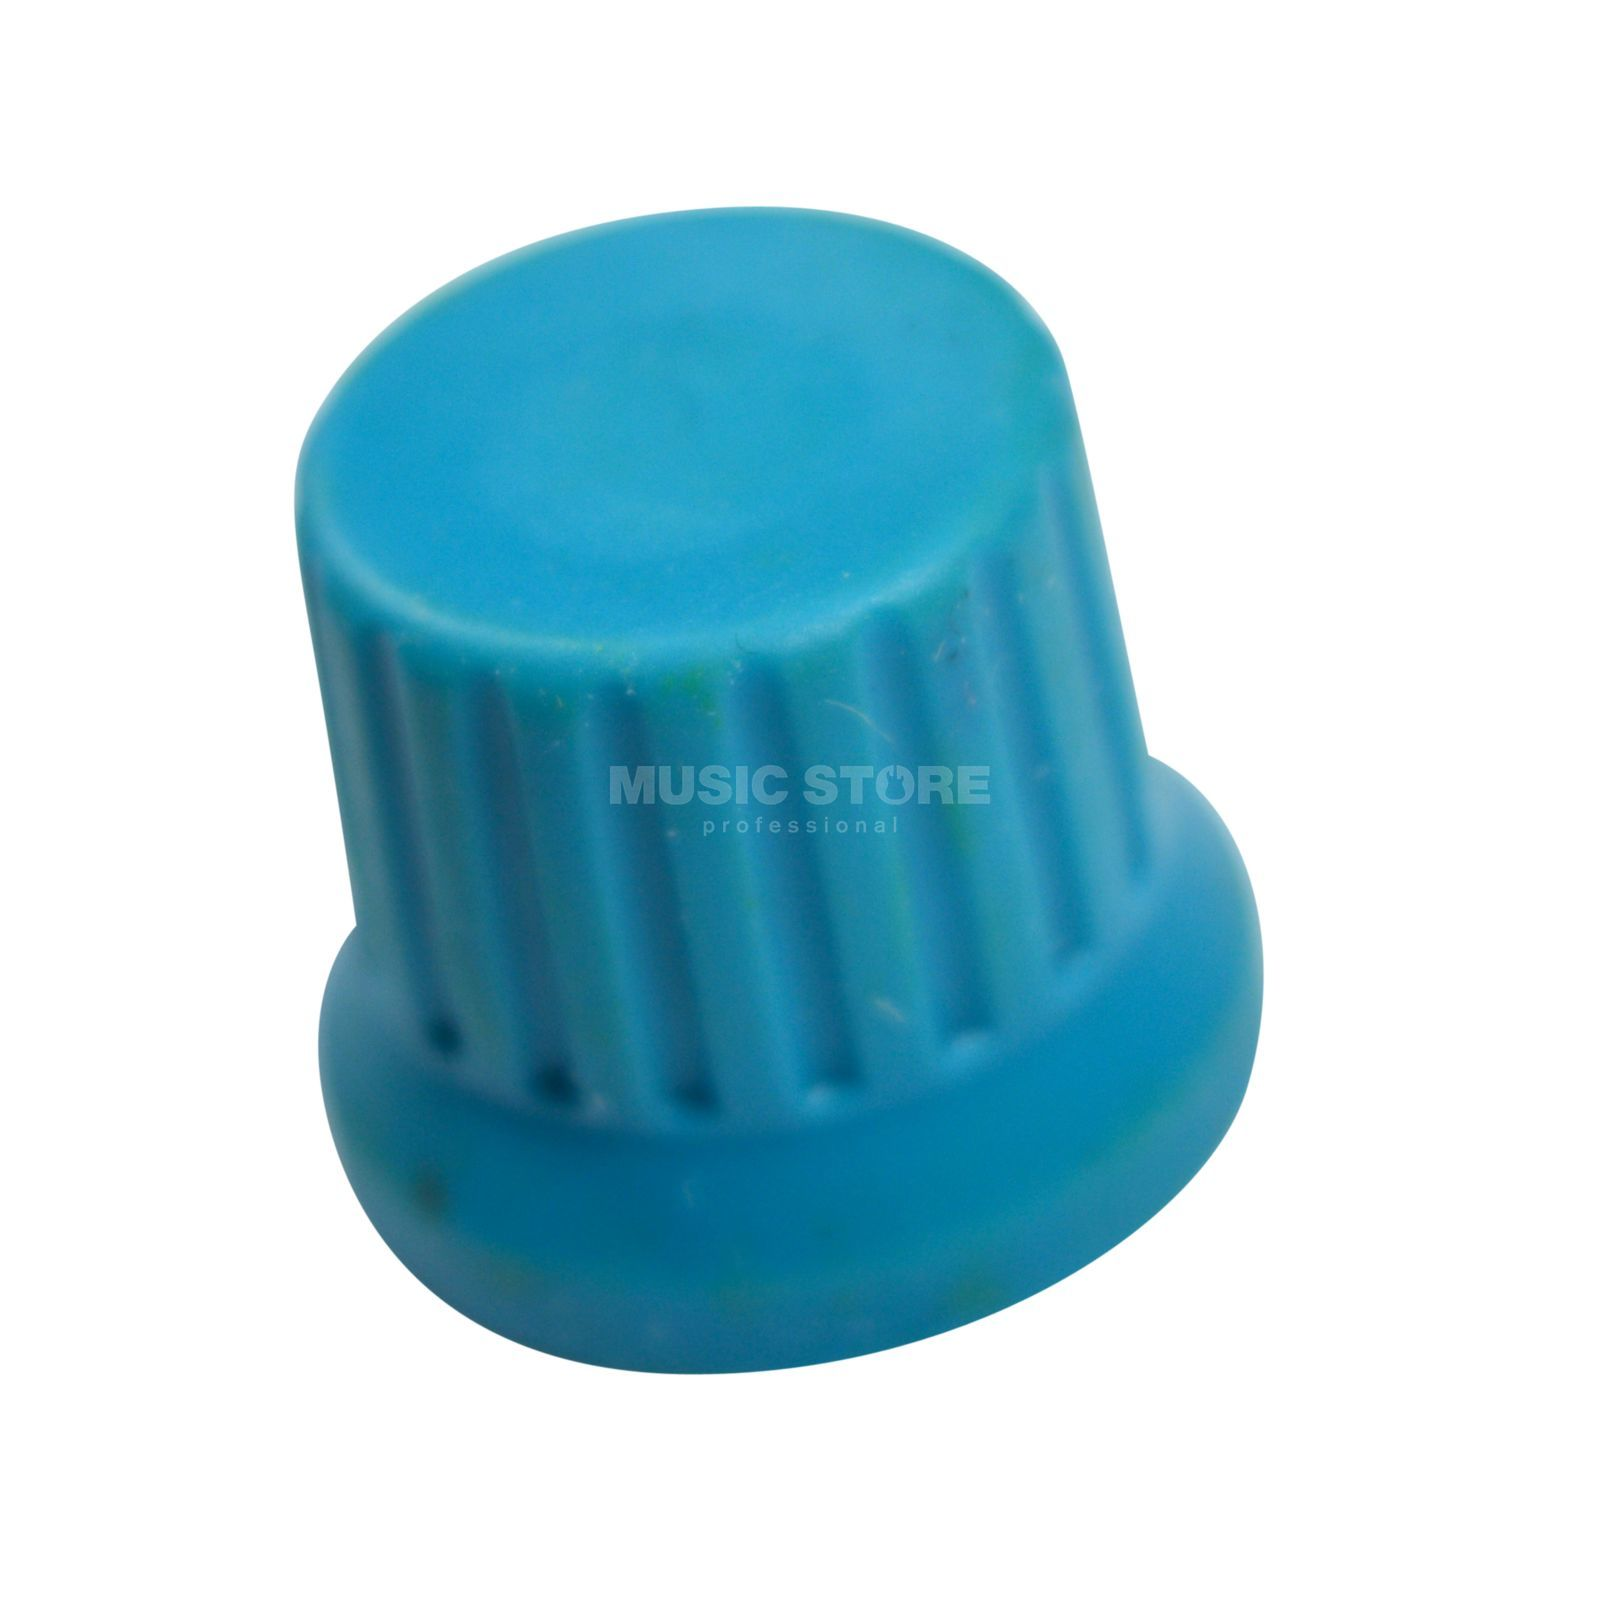 DJ TECHTOOLS Chroma Caps Encor Knob blue Produktbillede